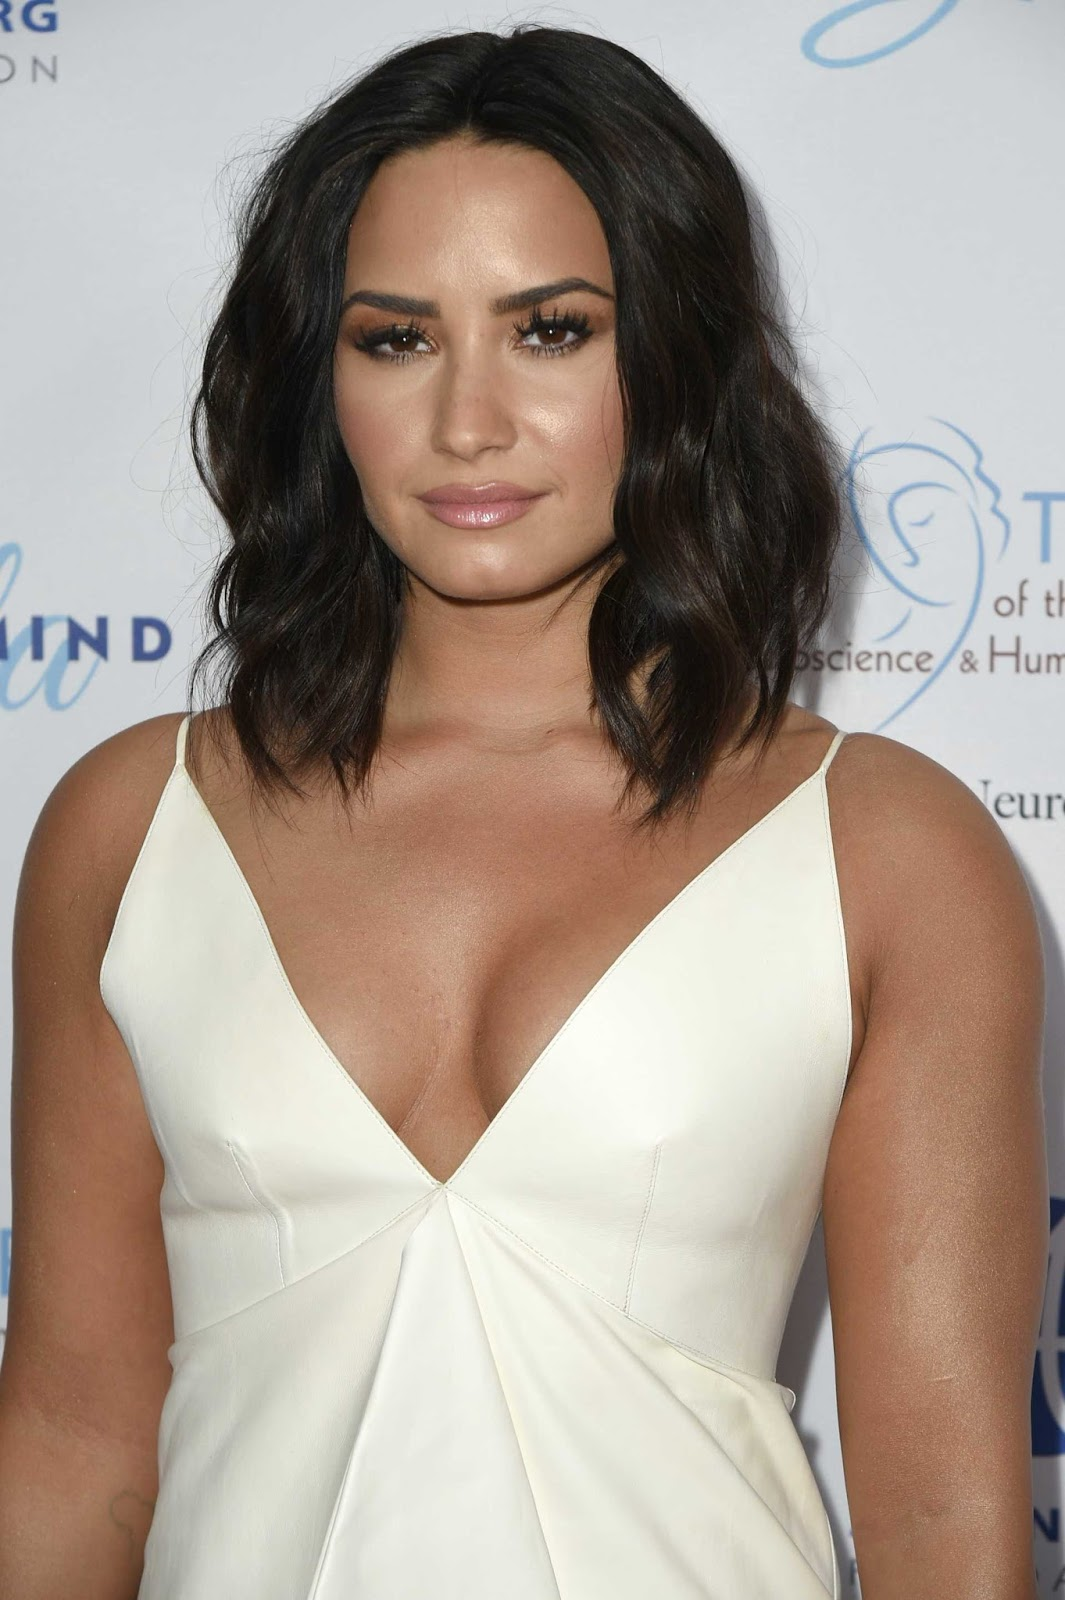 Demi Lovato wears plunging white gown to the Open Mind Gala at UCLA